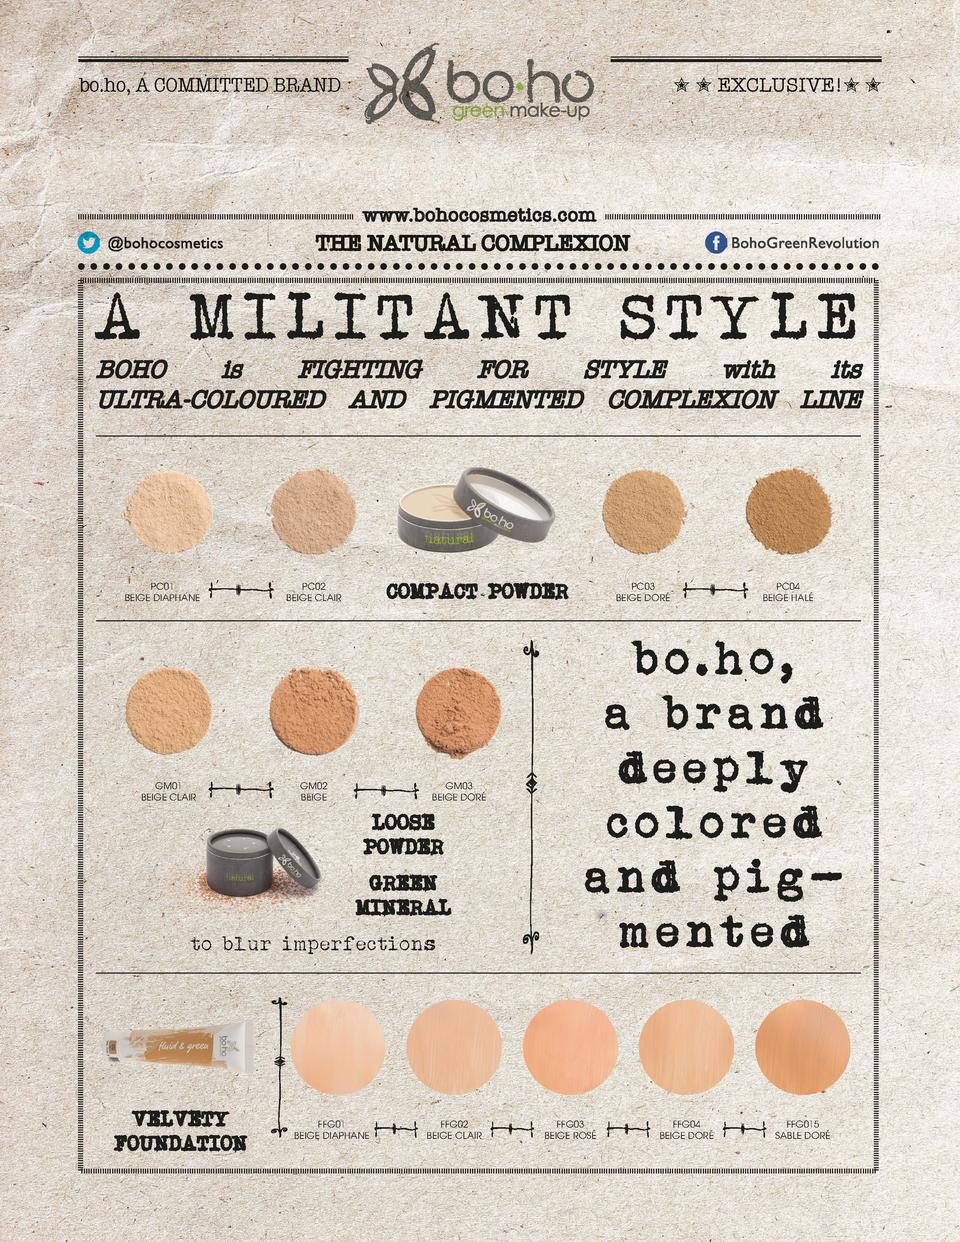 bo.ho, A COMMITTED BRAND          EXCLUSIVE          www.bohocosmetics.com  THE NATURAL COMPLEXION  A MILITANT STYLE  BOHO...